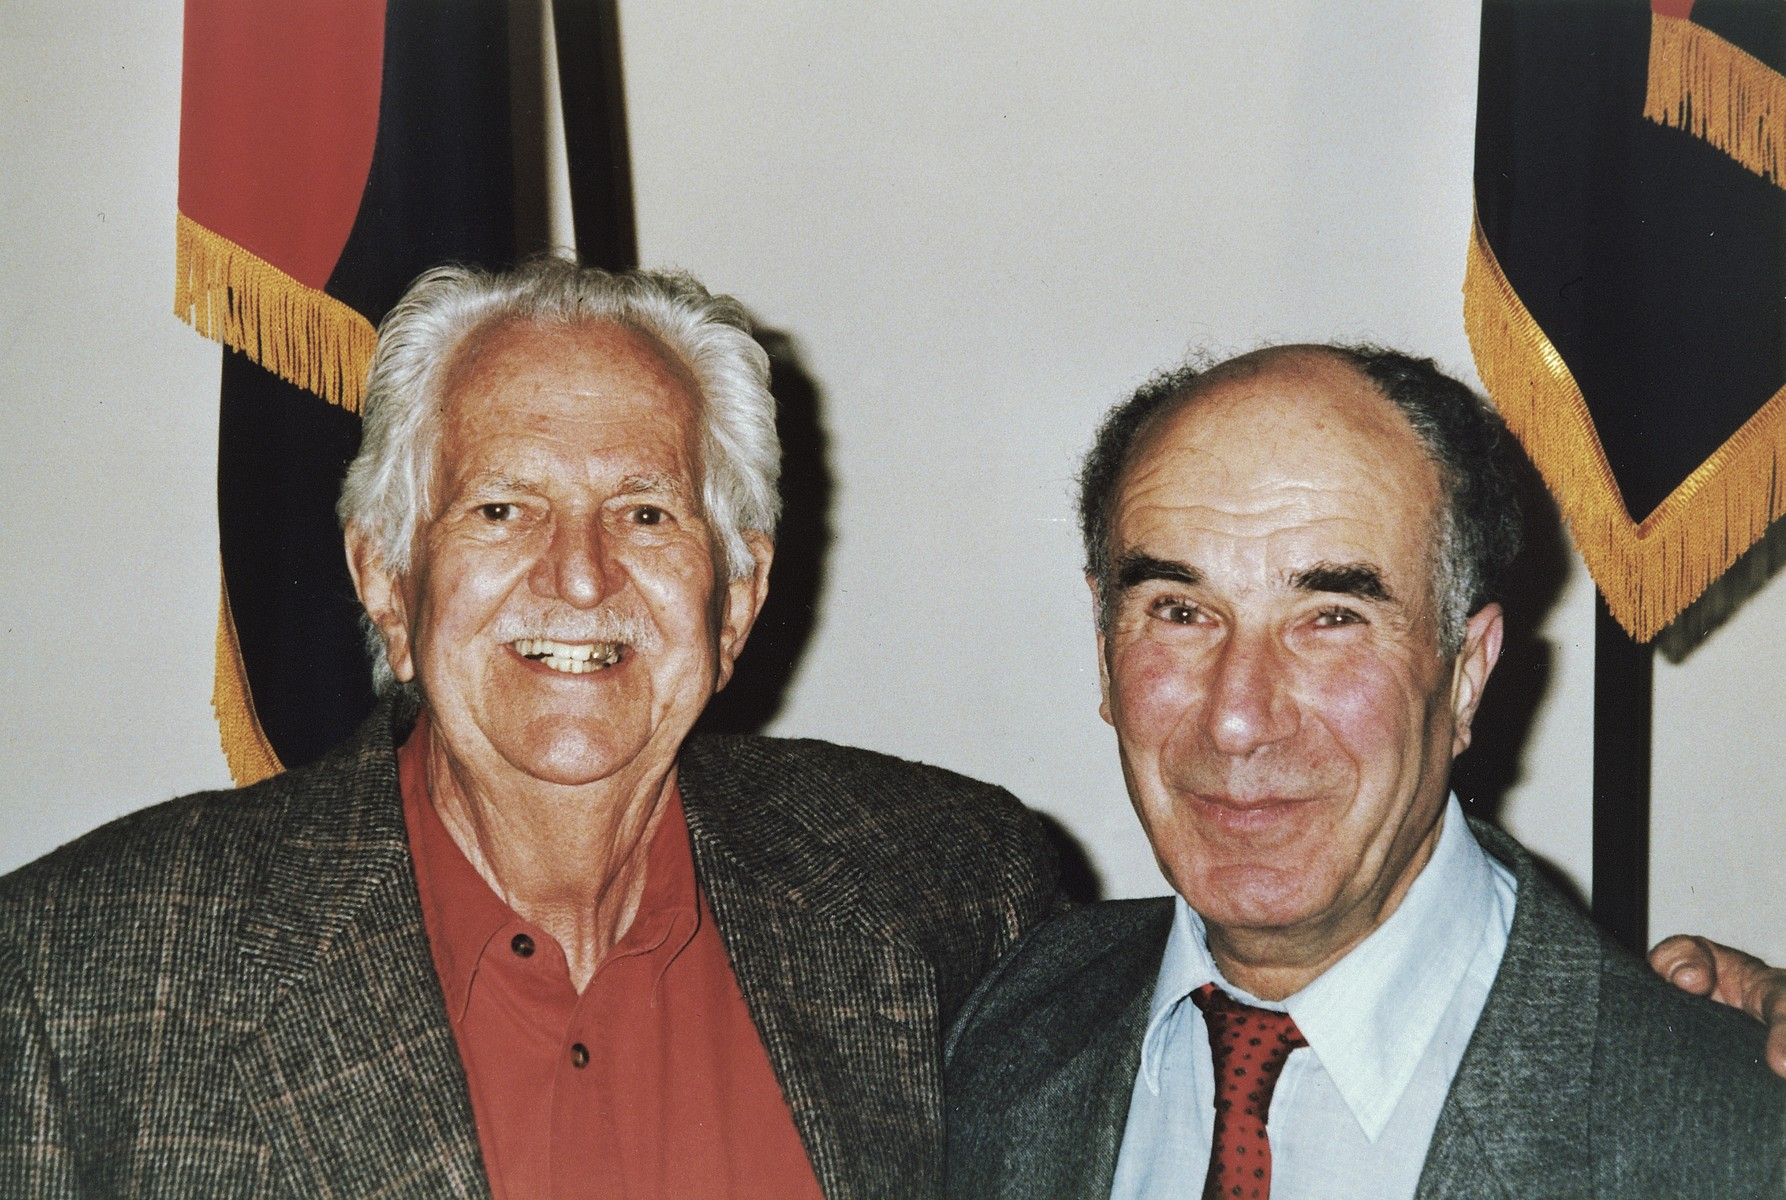 Portrait of American liberator Arnold E. Samuelson (left) and survivor George Havas (right) in front of the liberator flags at the U.S. Holocaust Memorial museum.